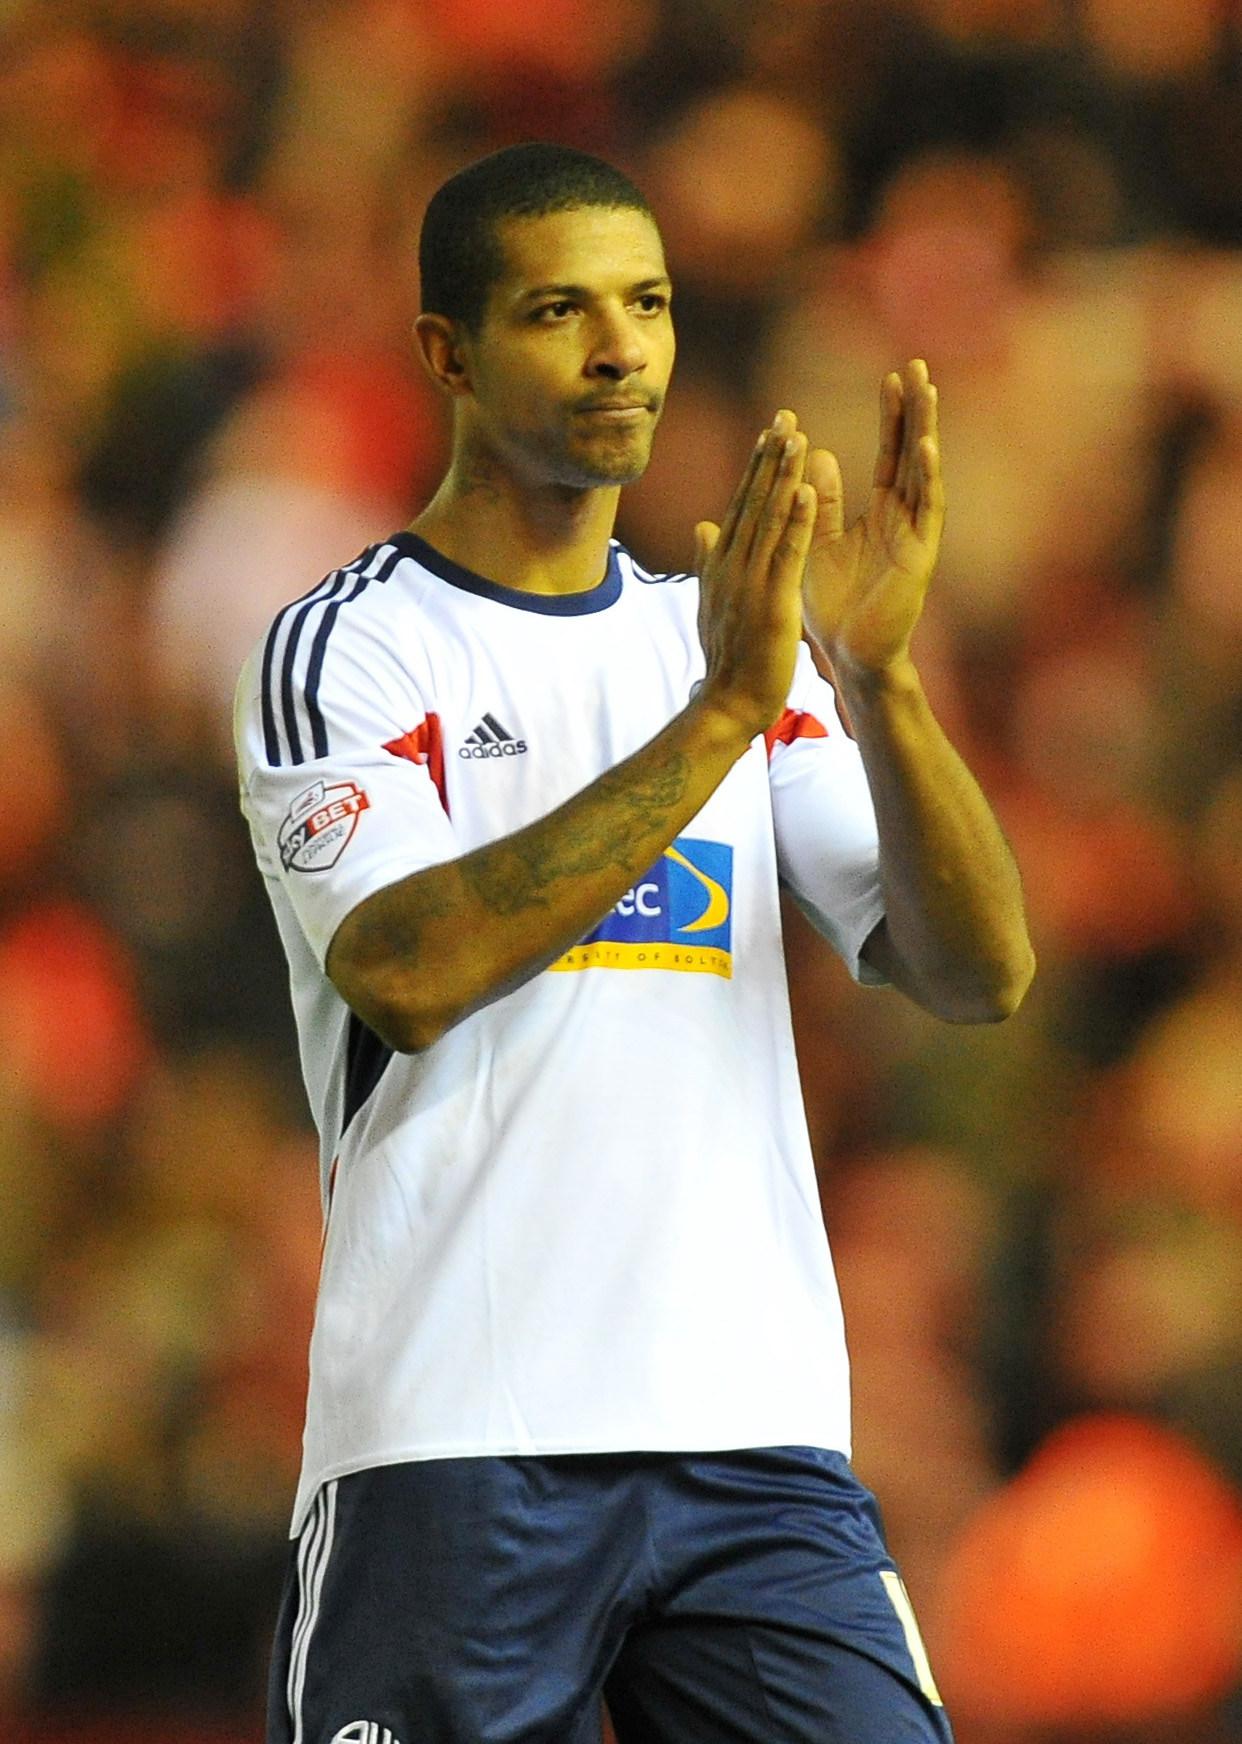 Jermaine Beckford impressed up front alongside David Ngog